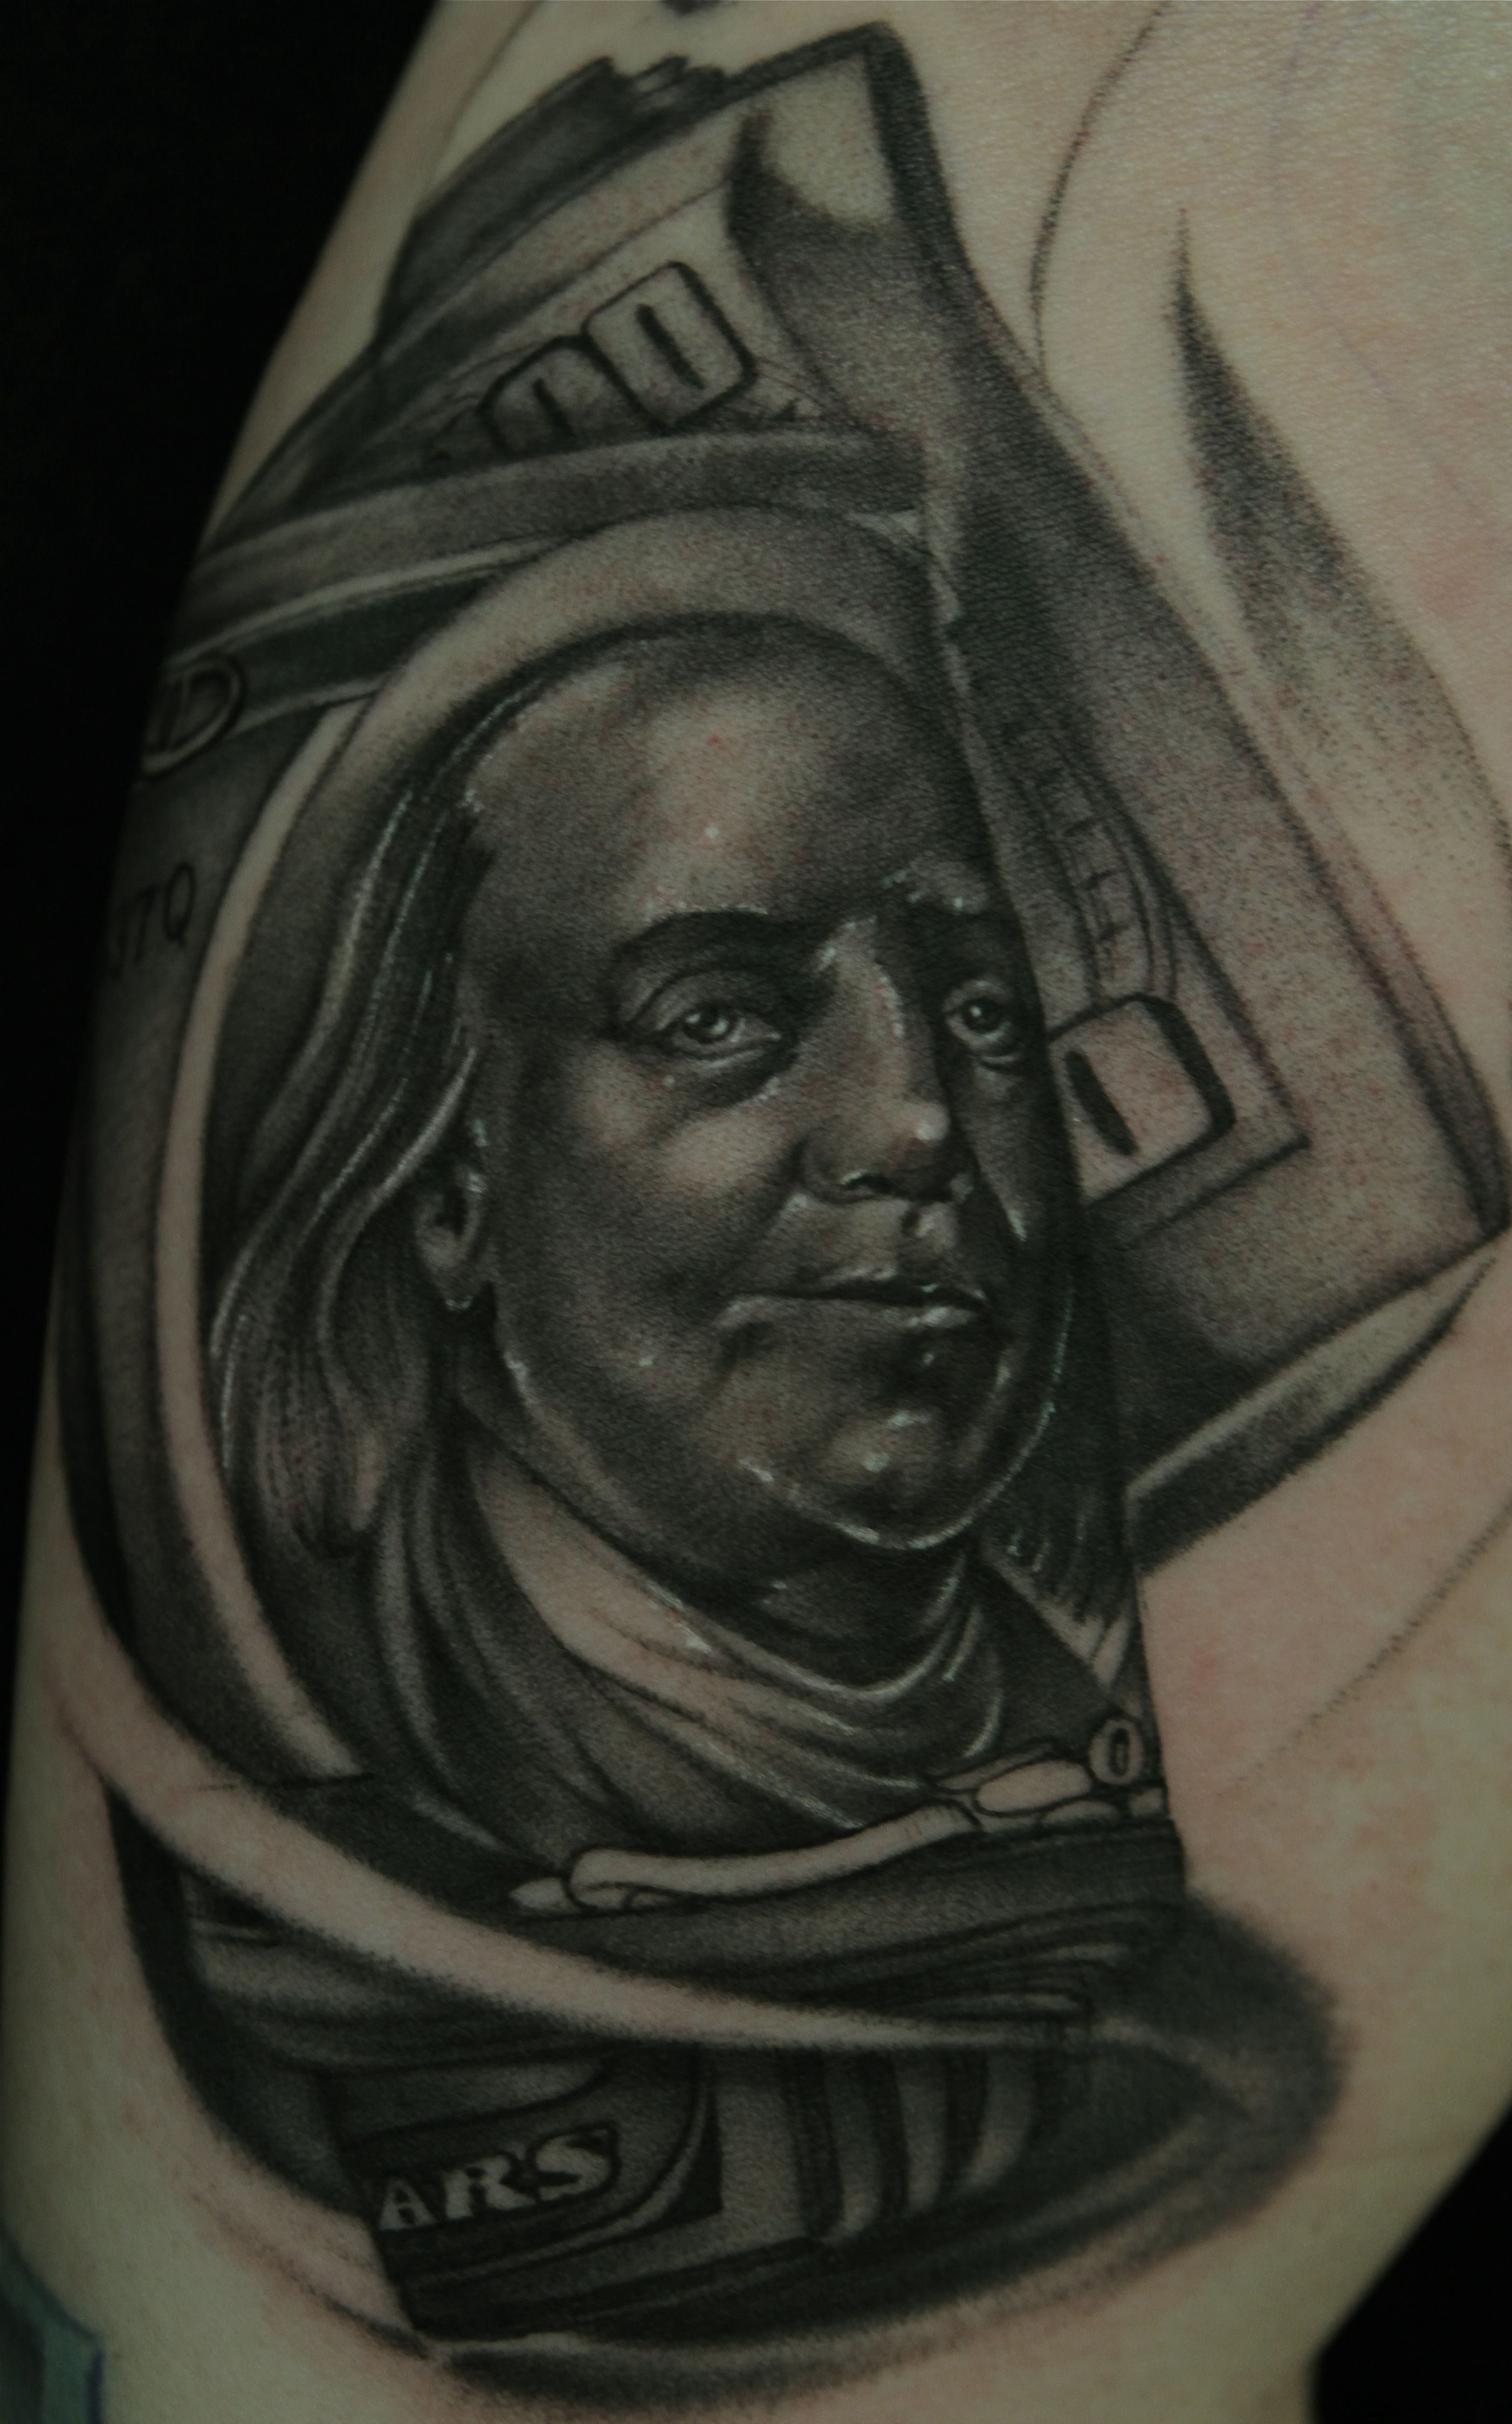 Tattoo tattoo designs and photography you can - Awesome Money Tattoo Design